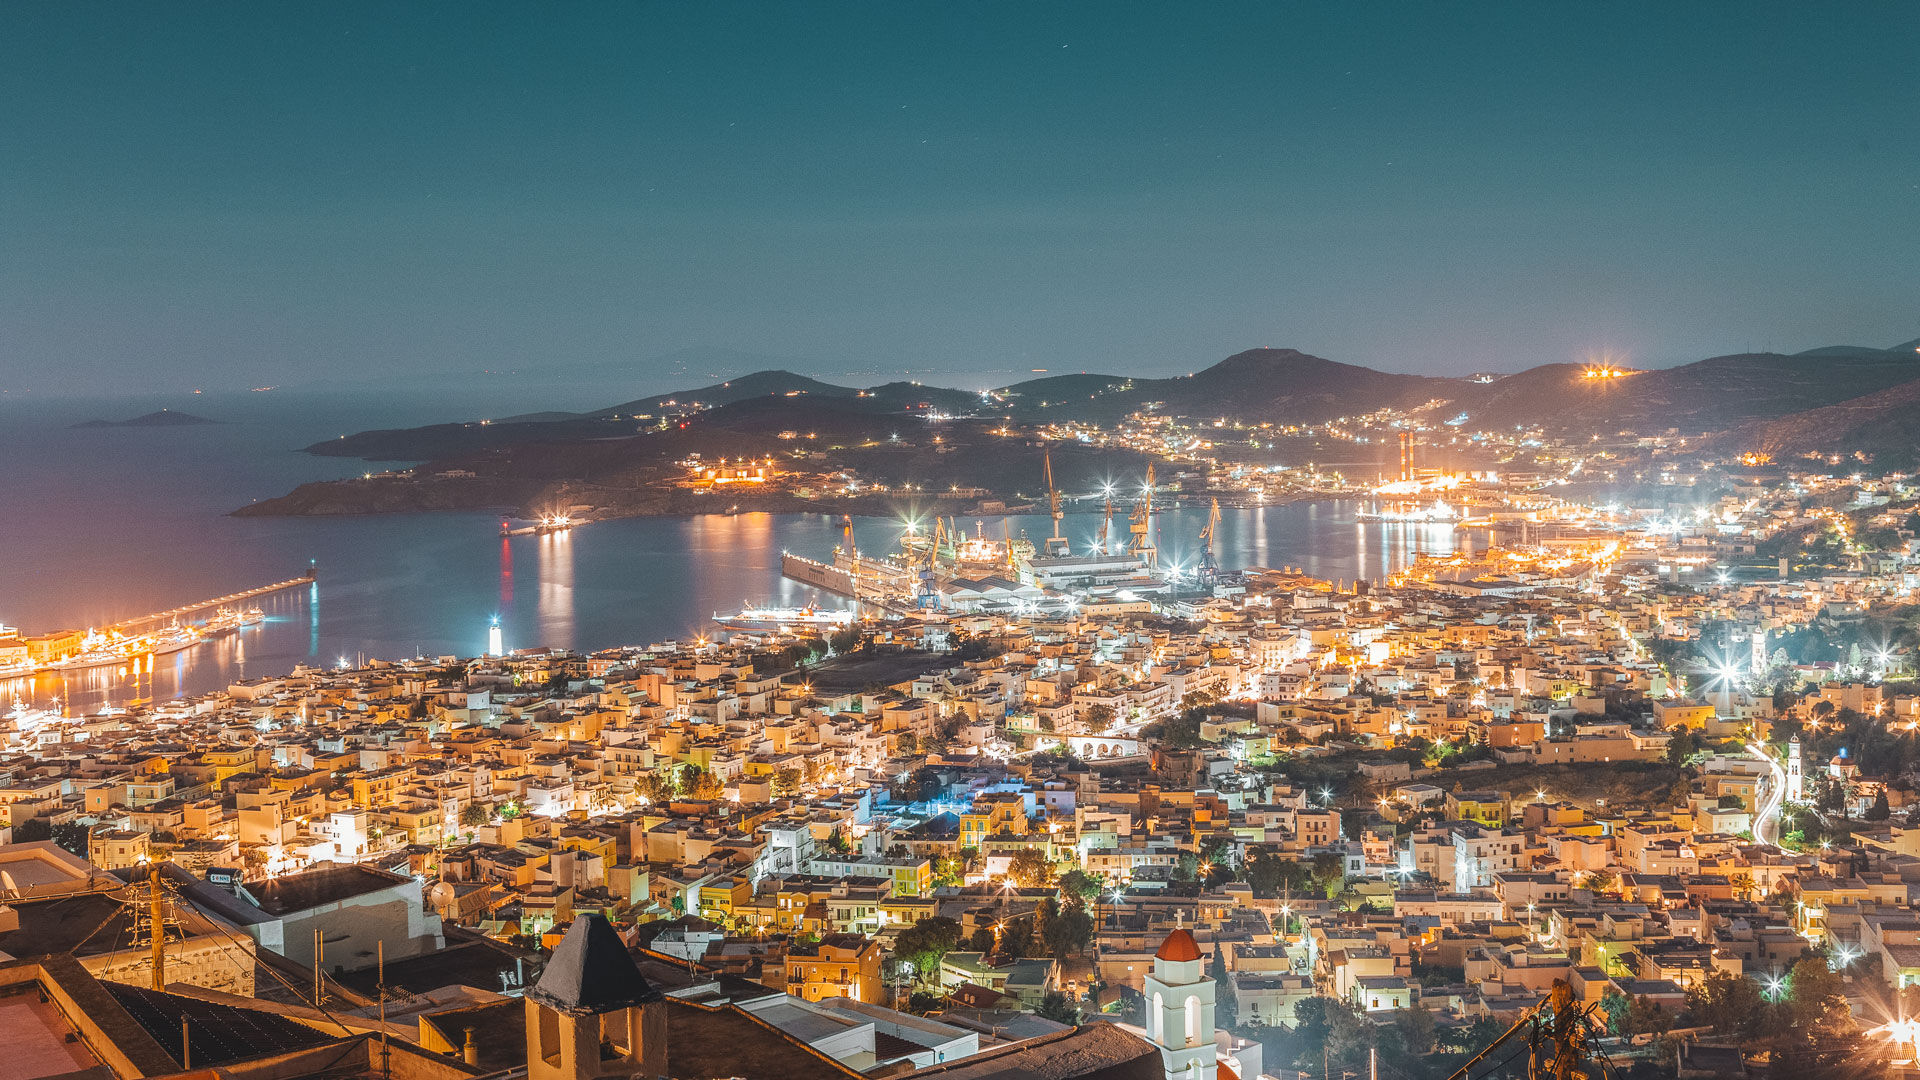 Ermoupoli, the port town of Syros at night